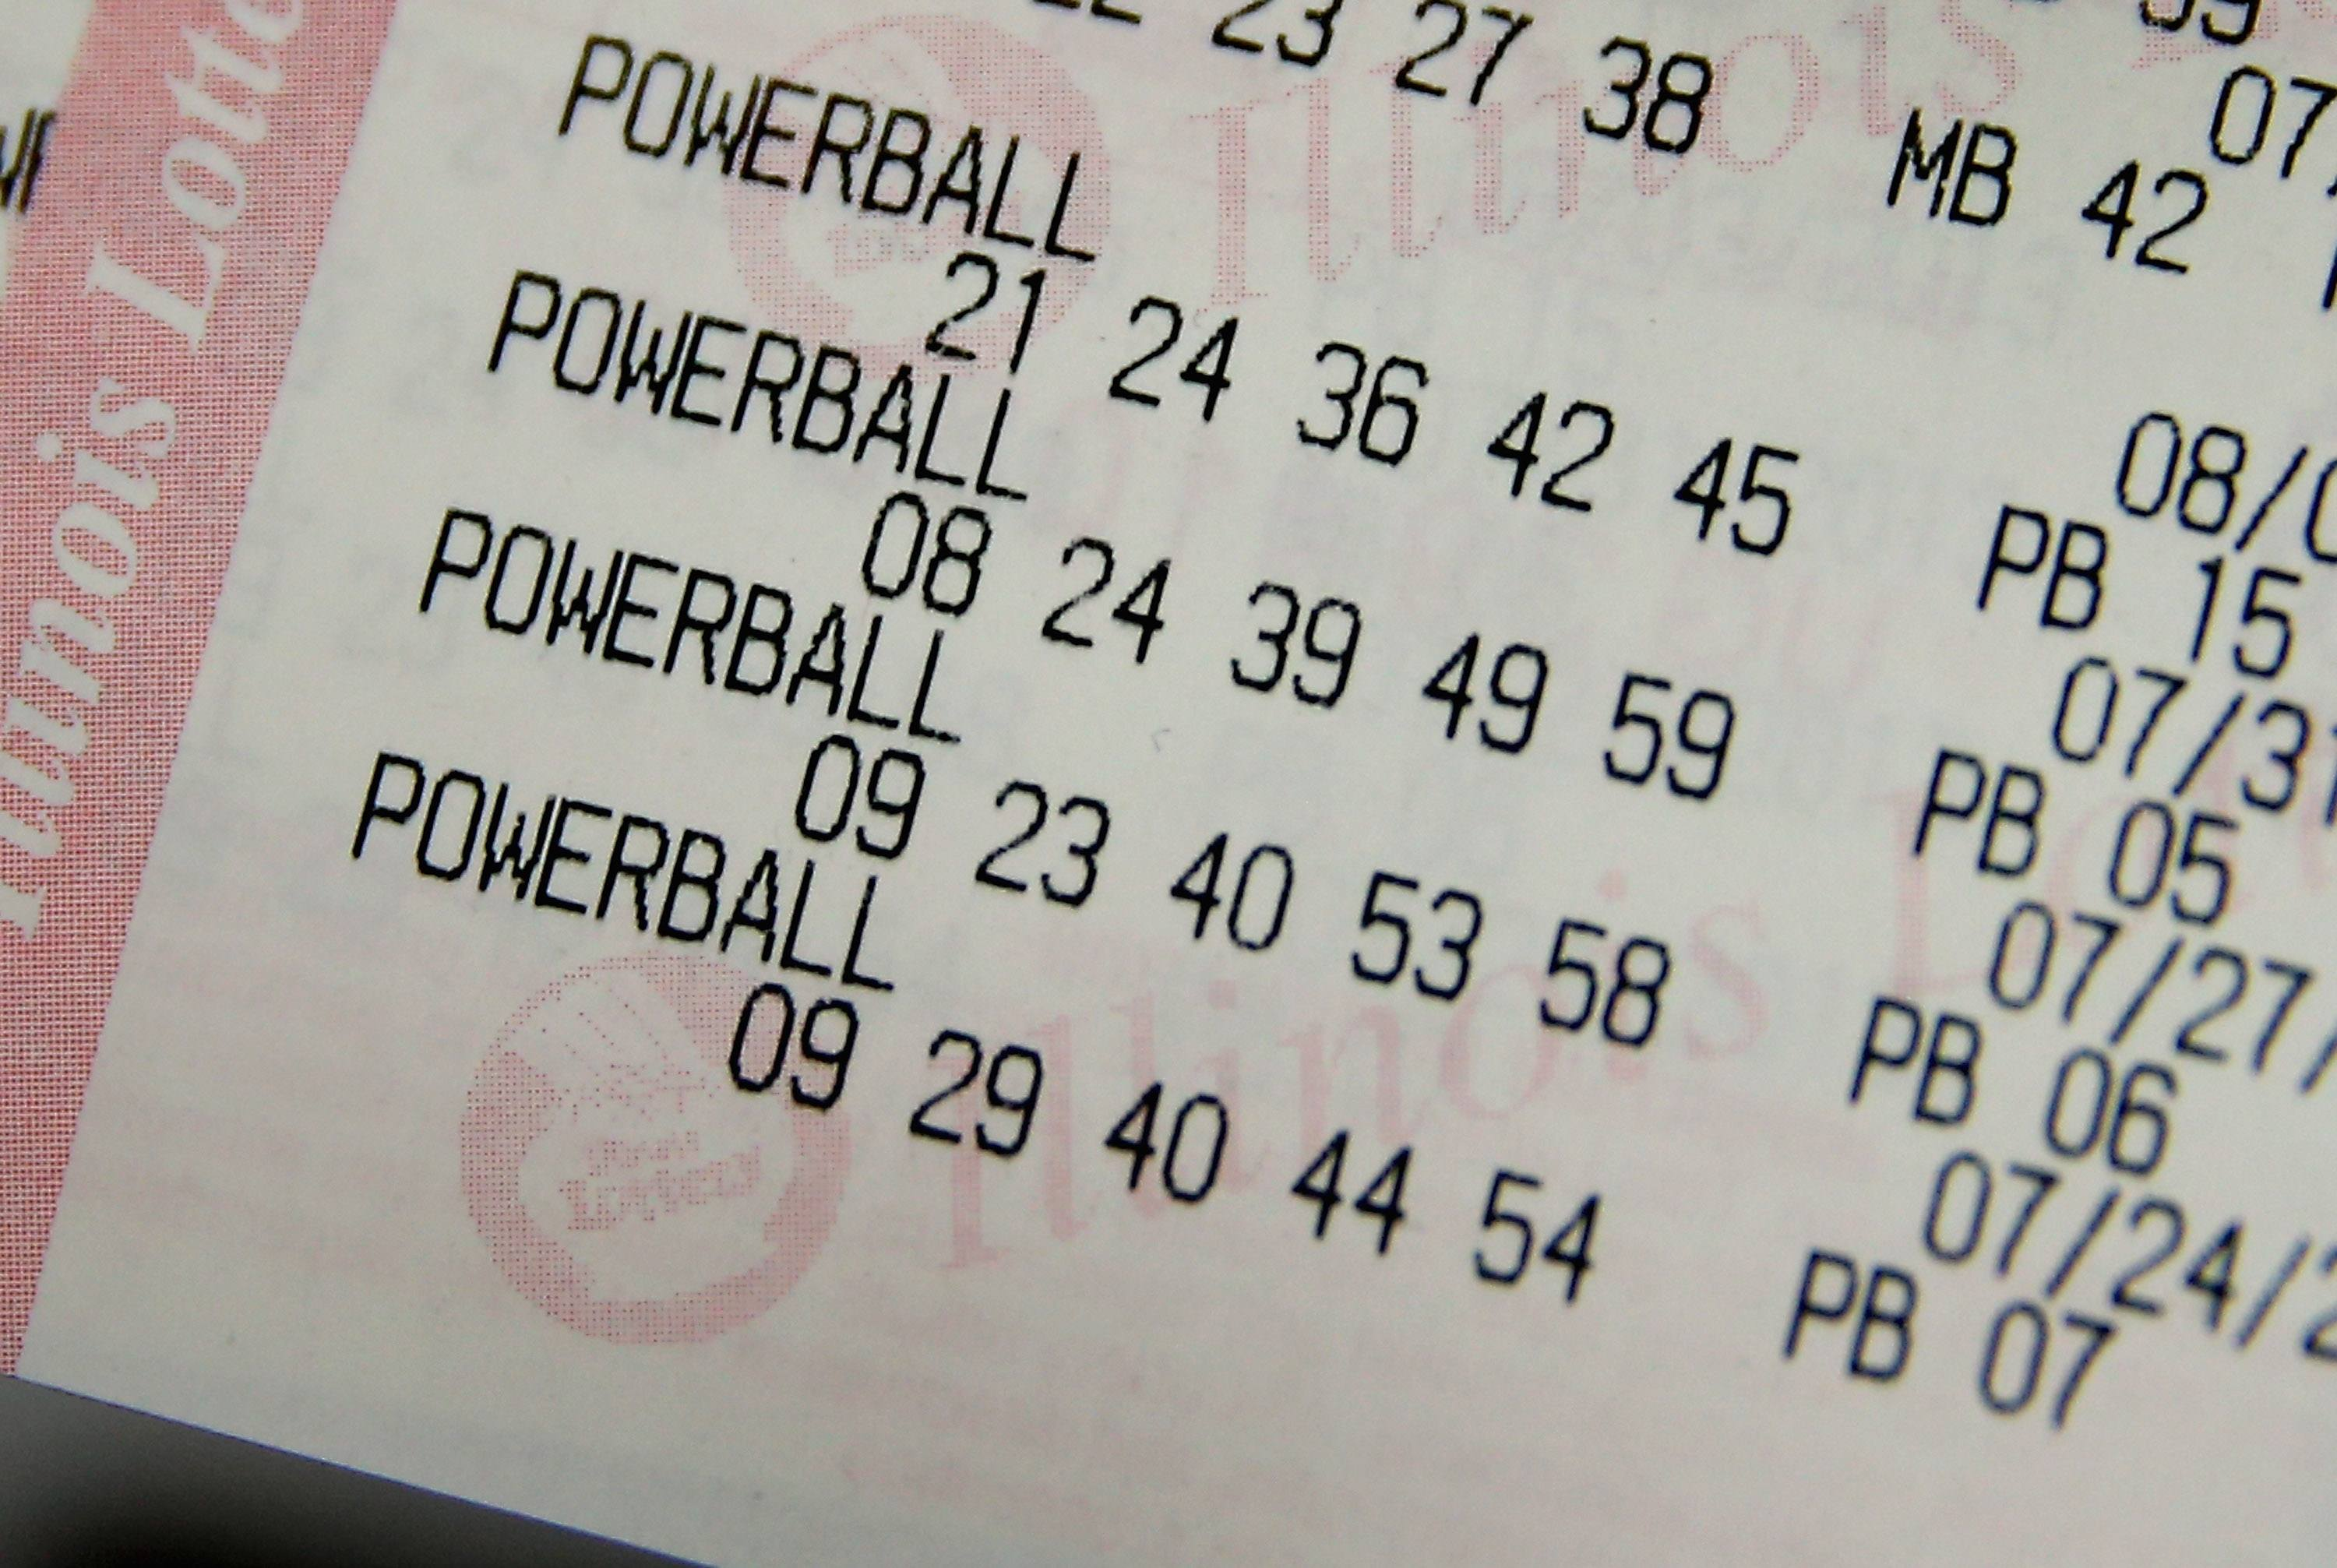 Powerball lottery numbers